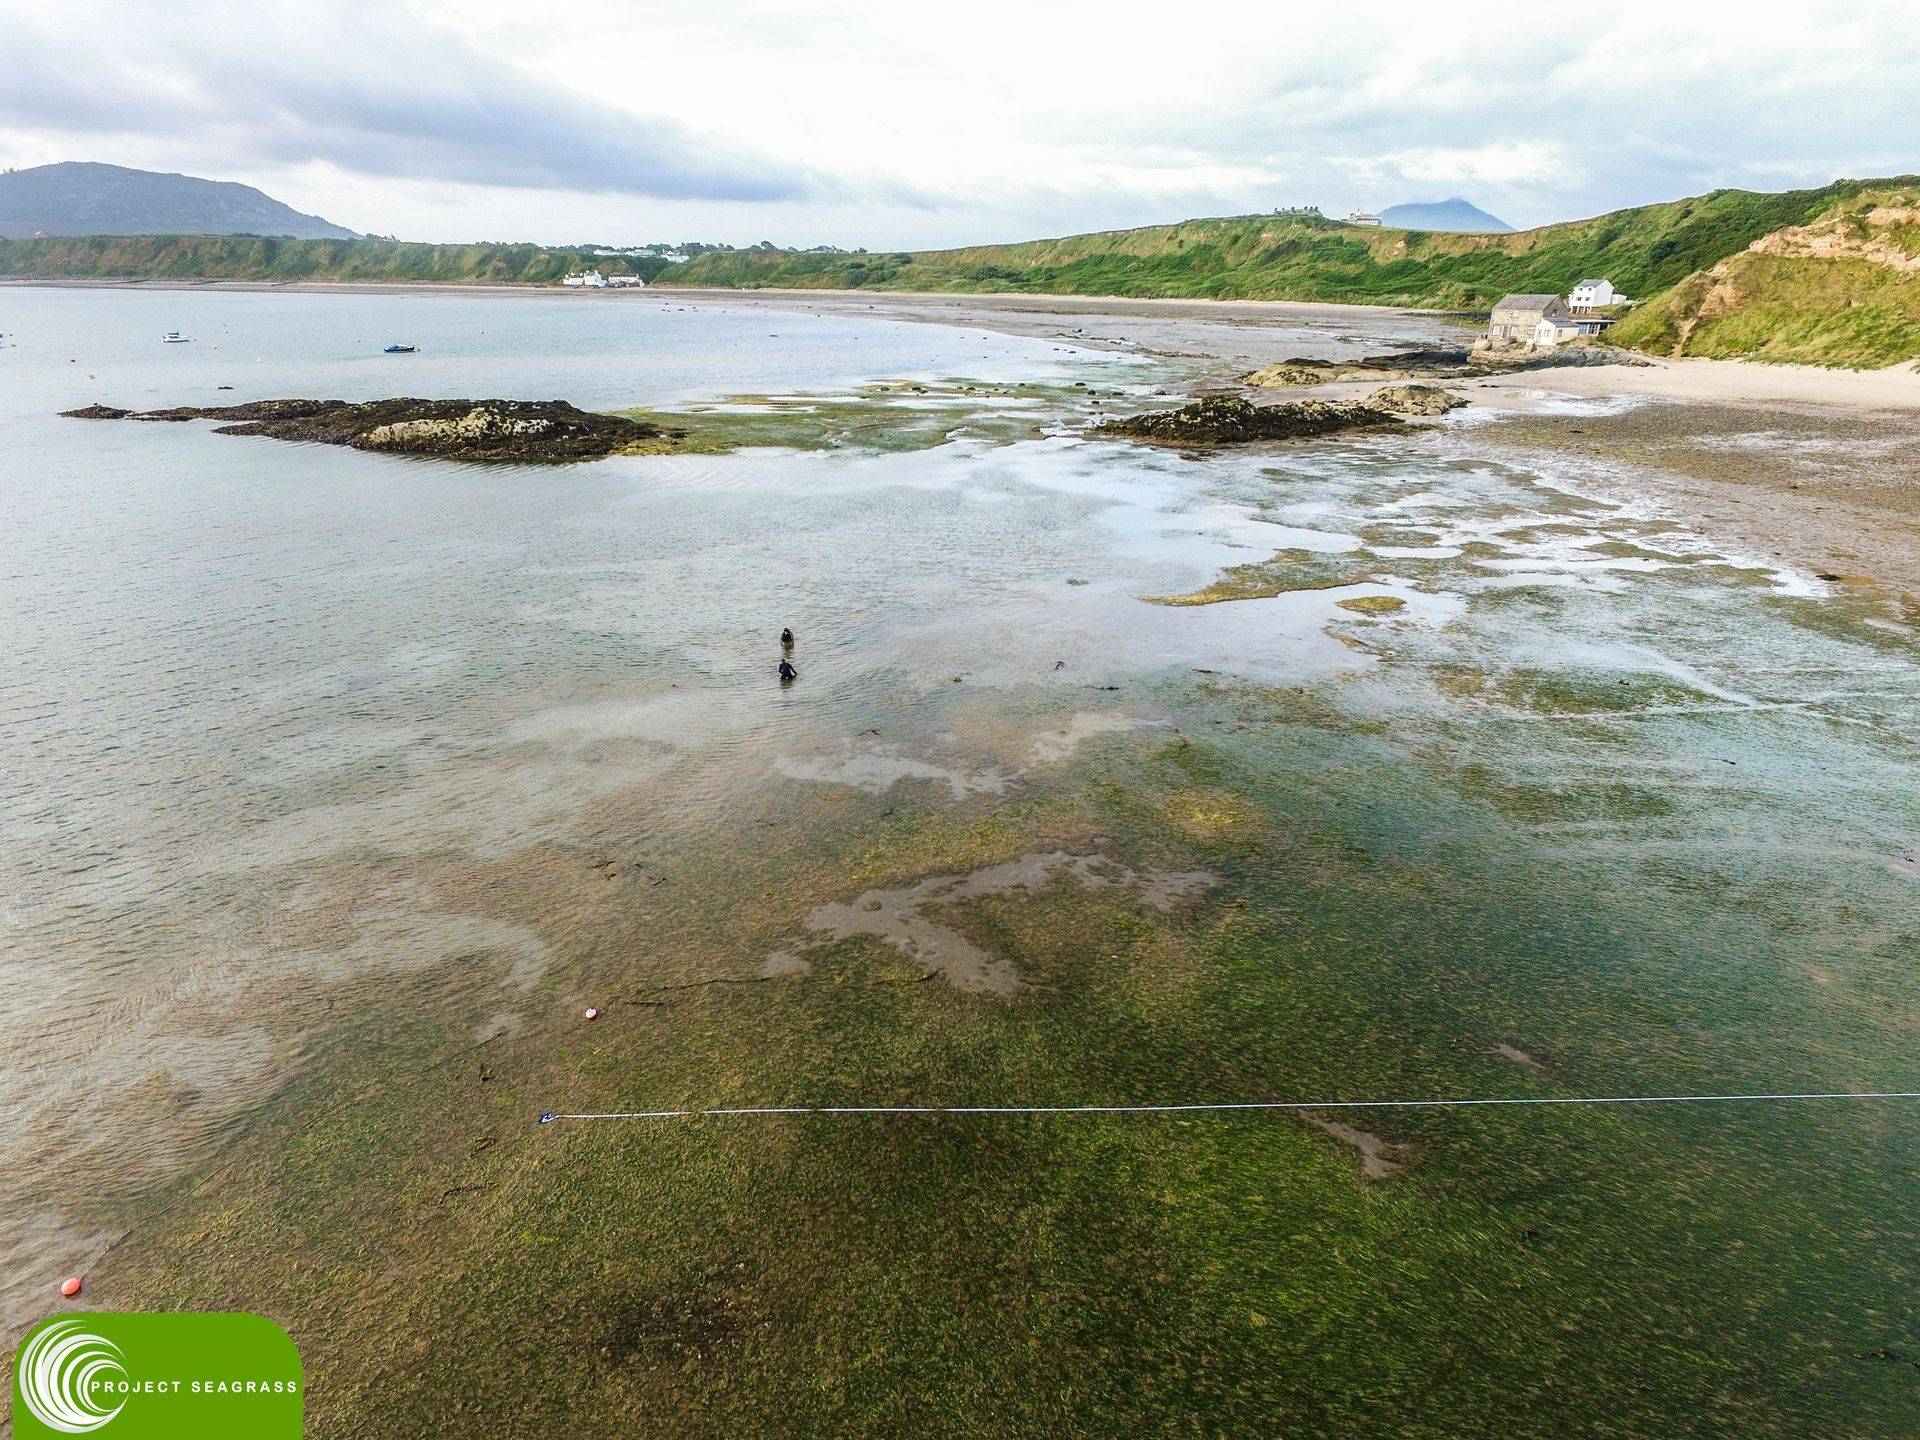 Seagrass Research in Porthdinllaen, Wales